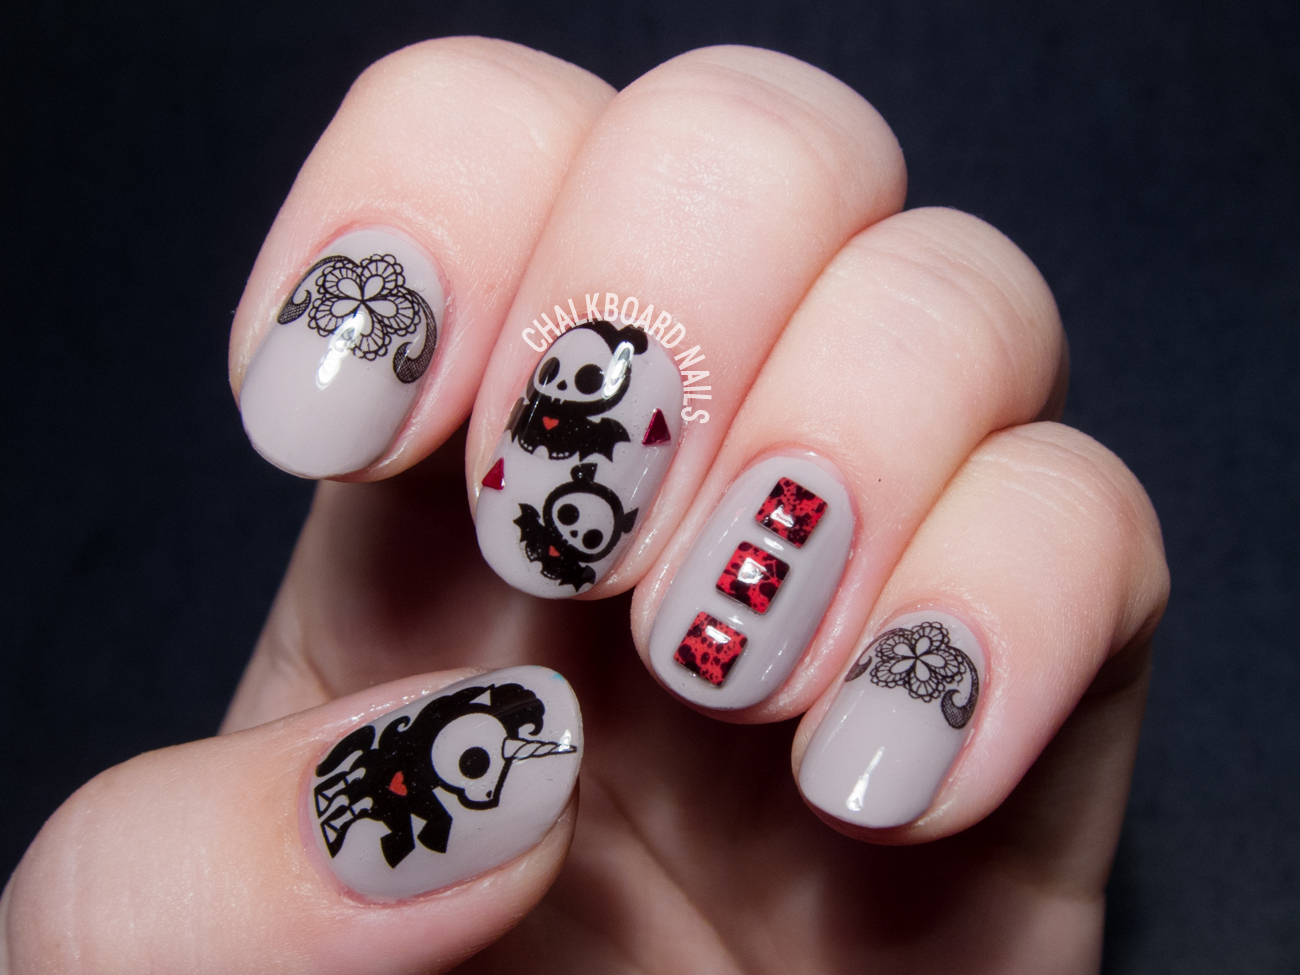 Nail Pop x Skelanimals decals via @chalkboardnails